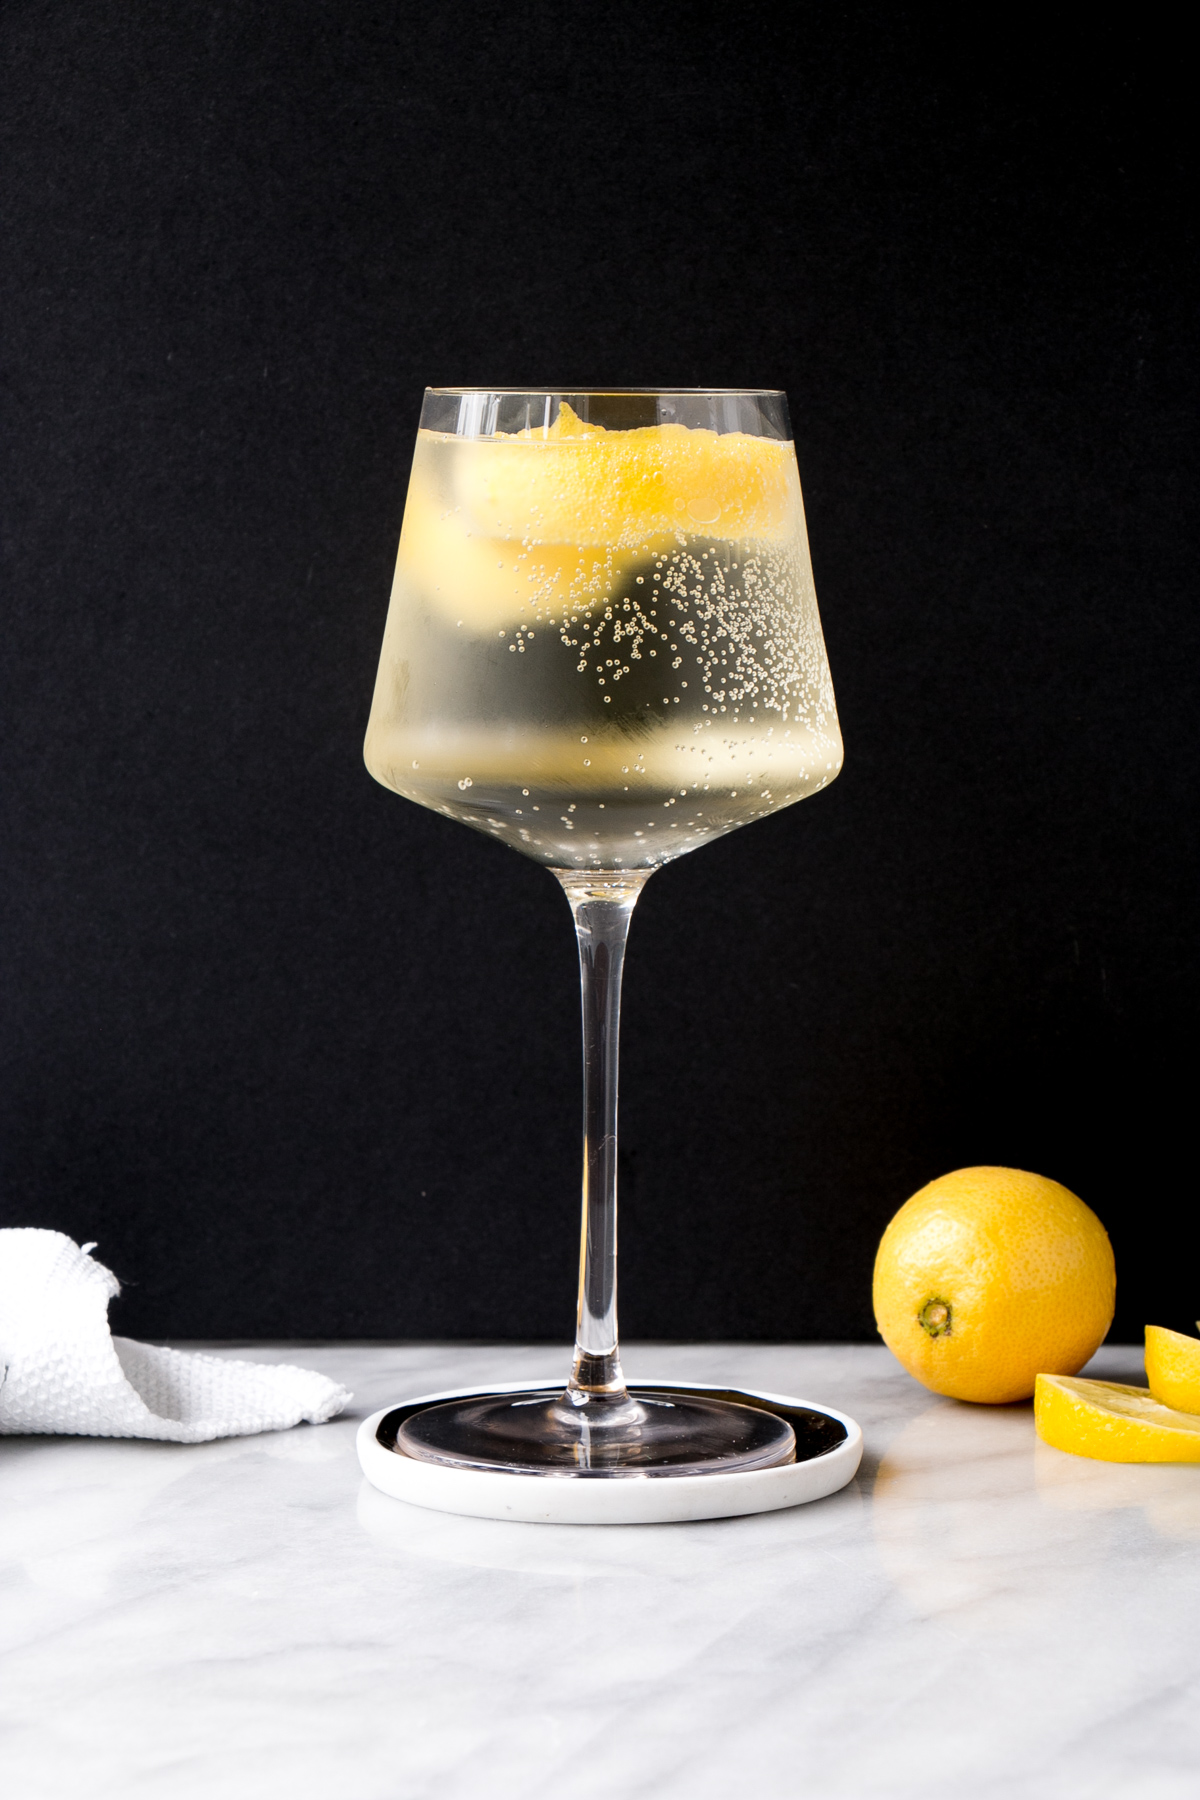 White wine spritzer in a tall wine glass with lemon rind in it.